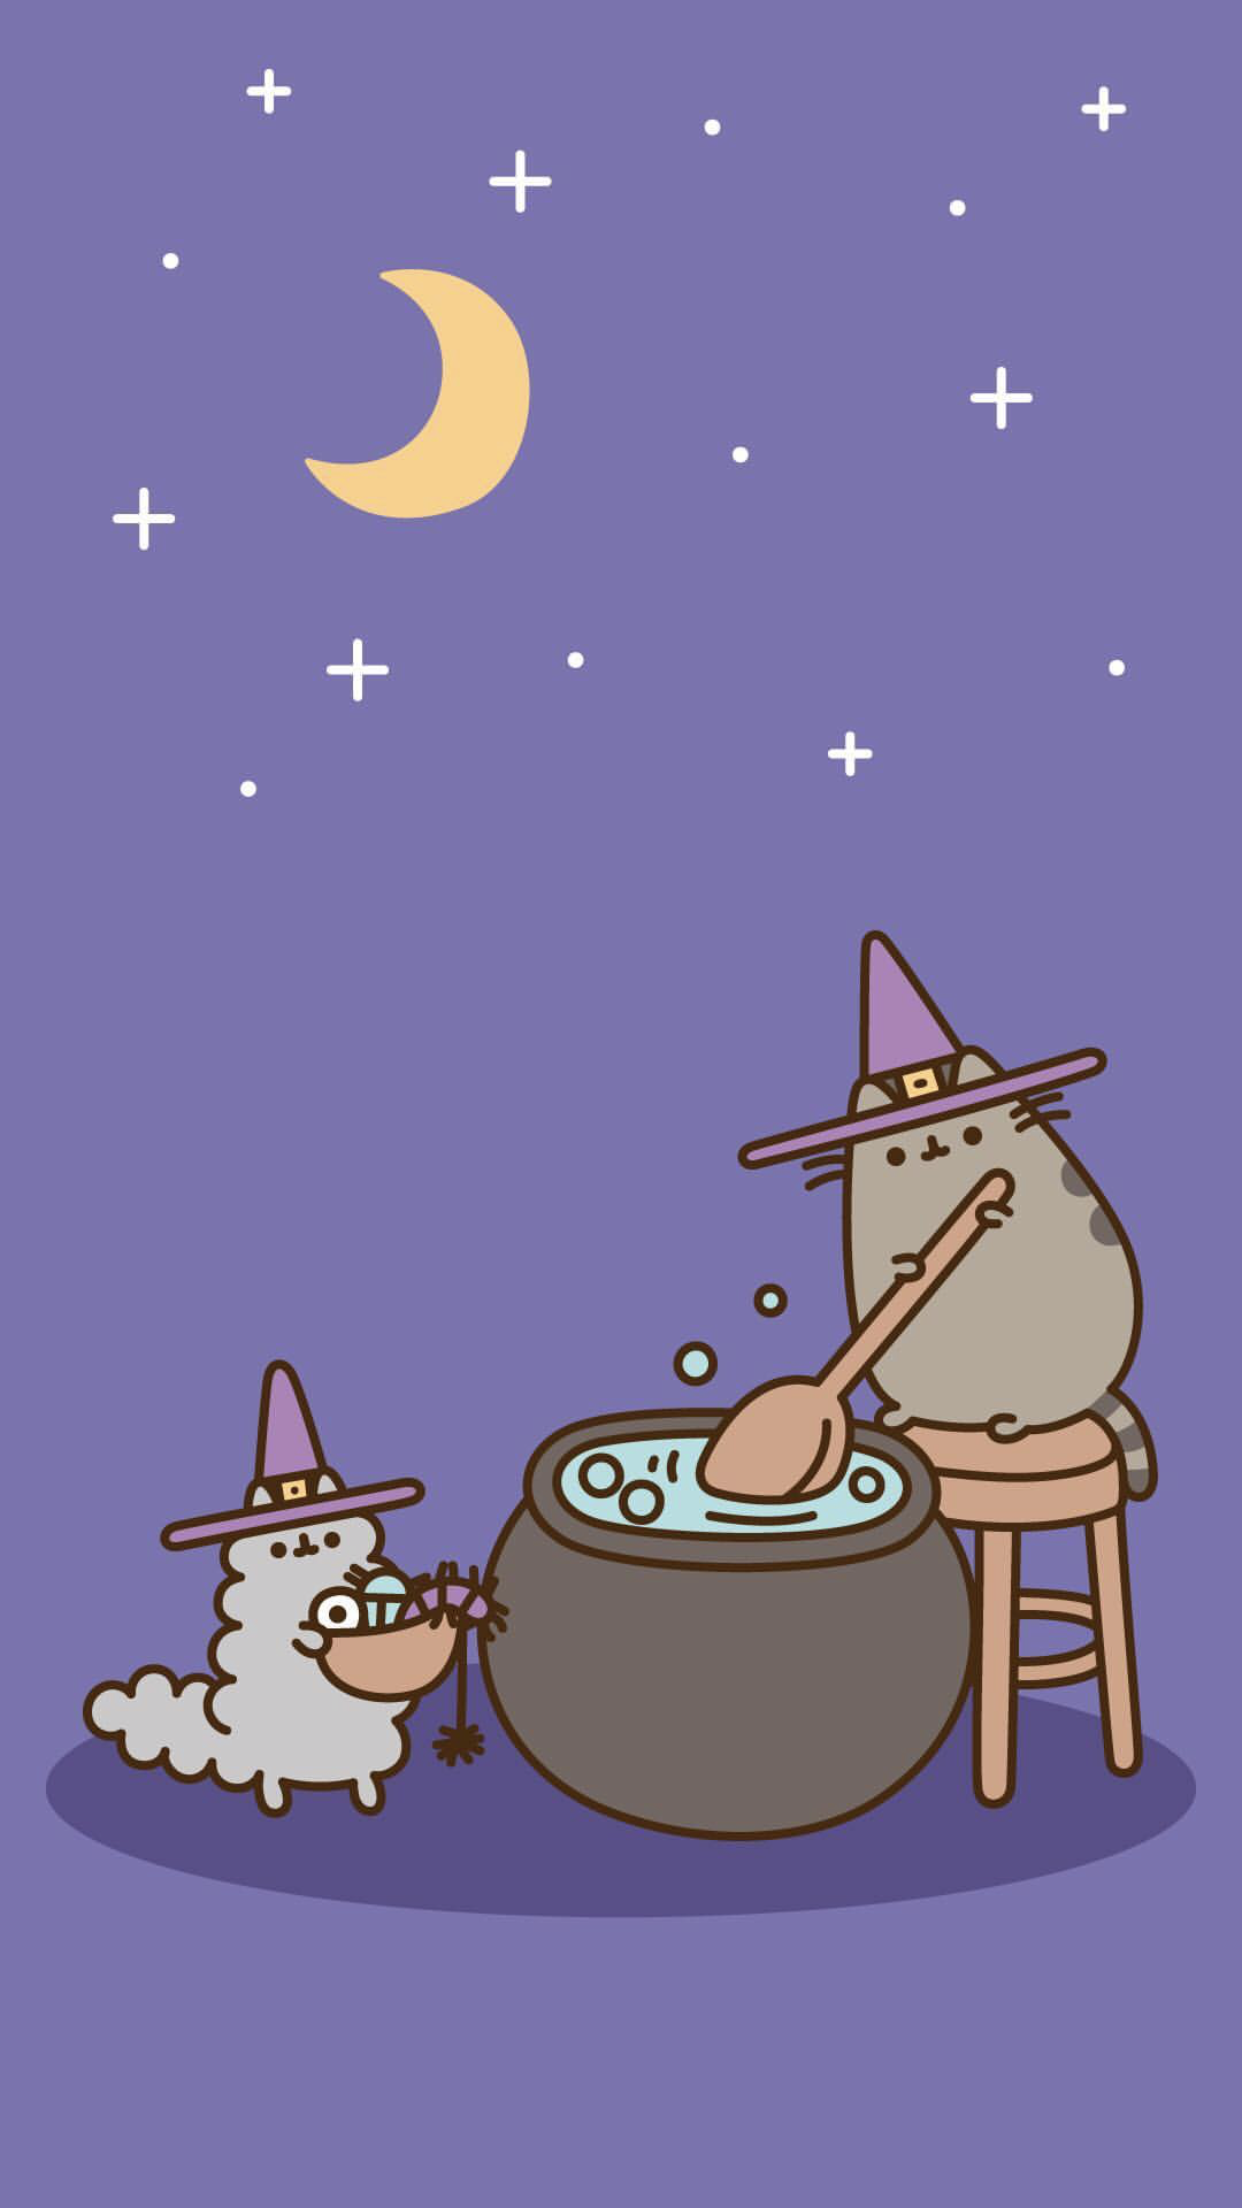 pusheen iphone wallpaper halloween (With images) Witch